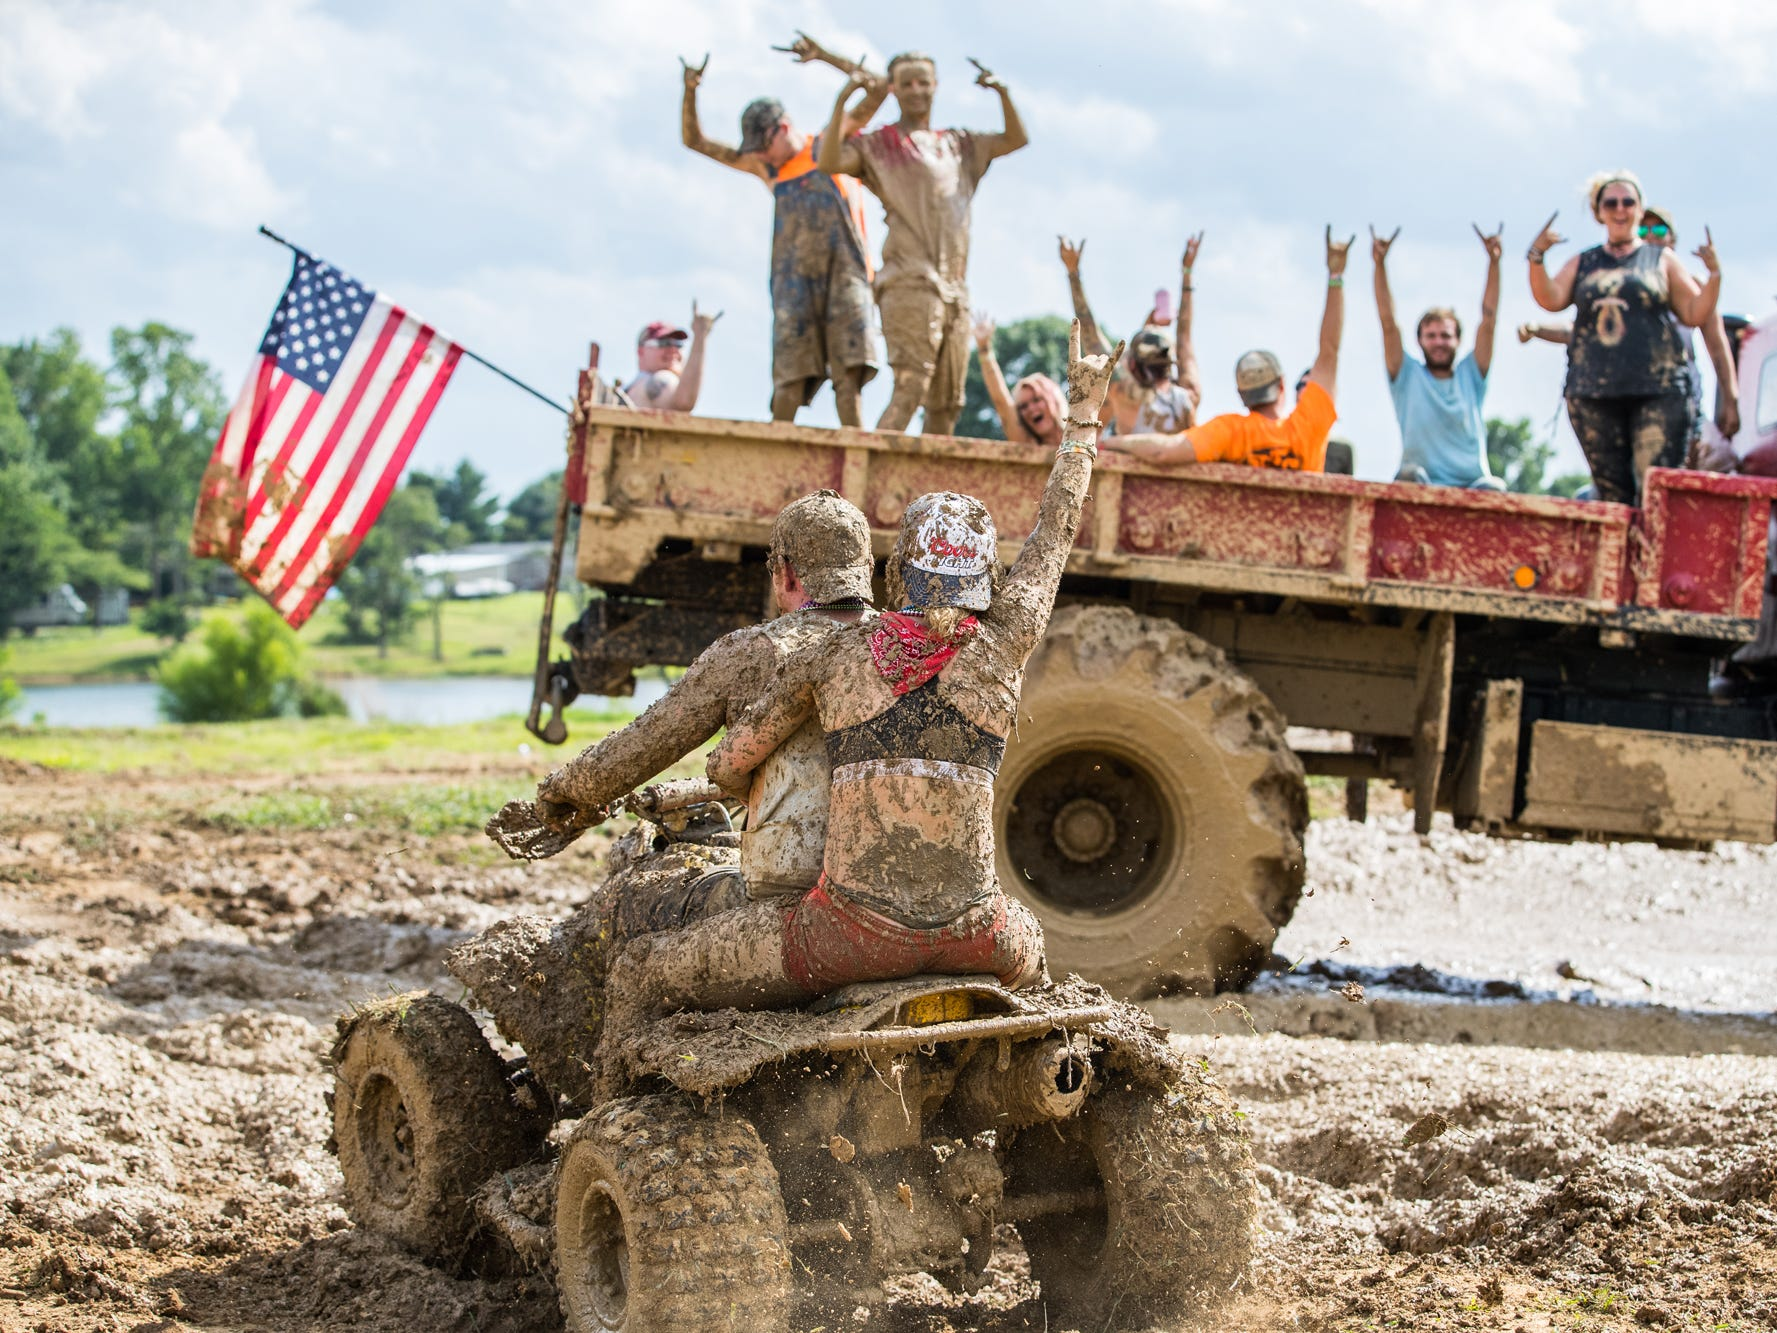 Riders on the back of Dean Keith's red military truck wave to ATV riders Jarrod Timberman and Kate Barton during the Redneck Rave at BlackSwan Mudpit in Medora, Ind., on Friday, July 20, 2018.